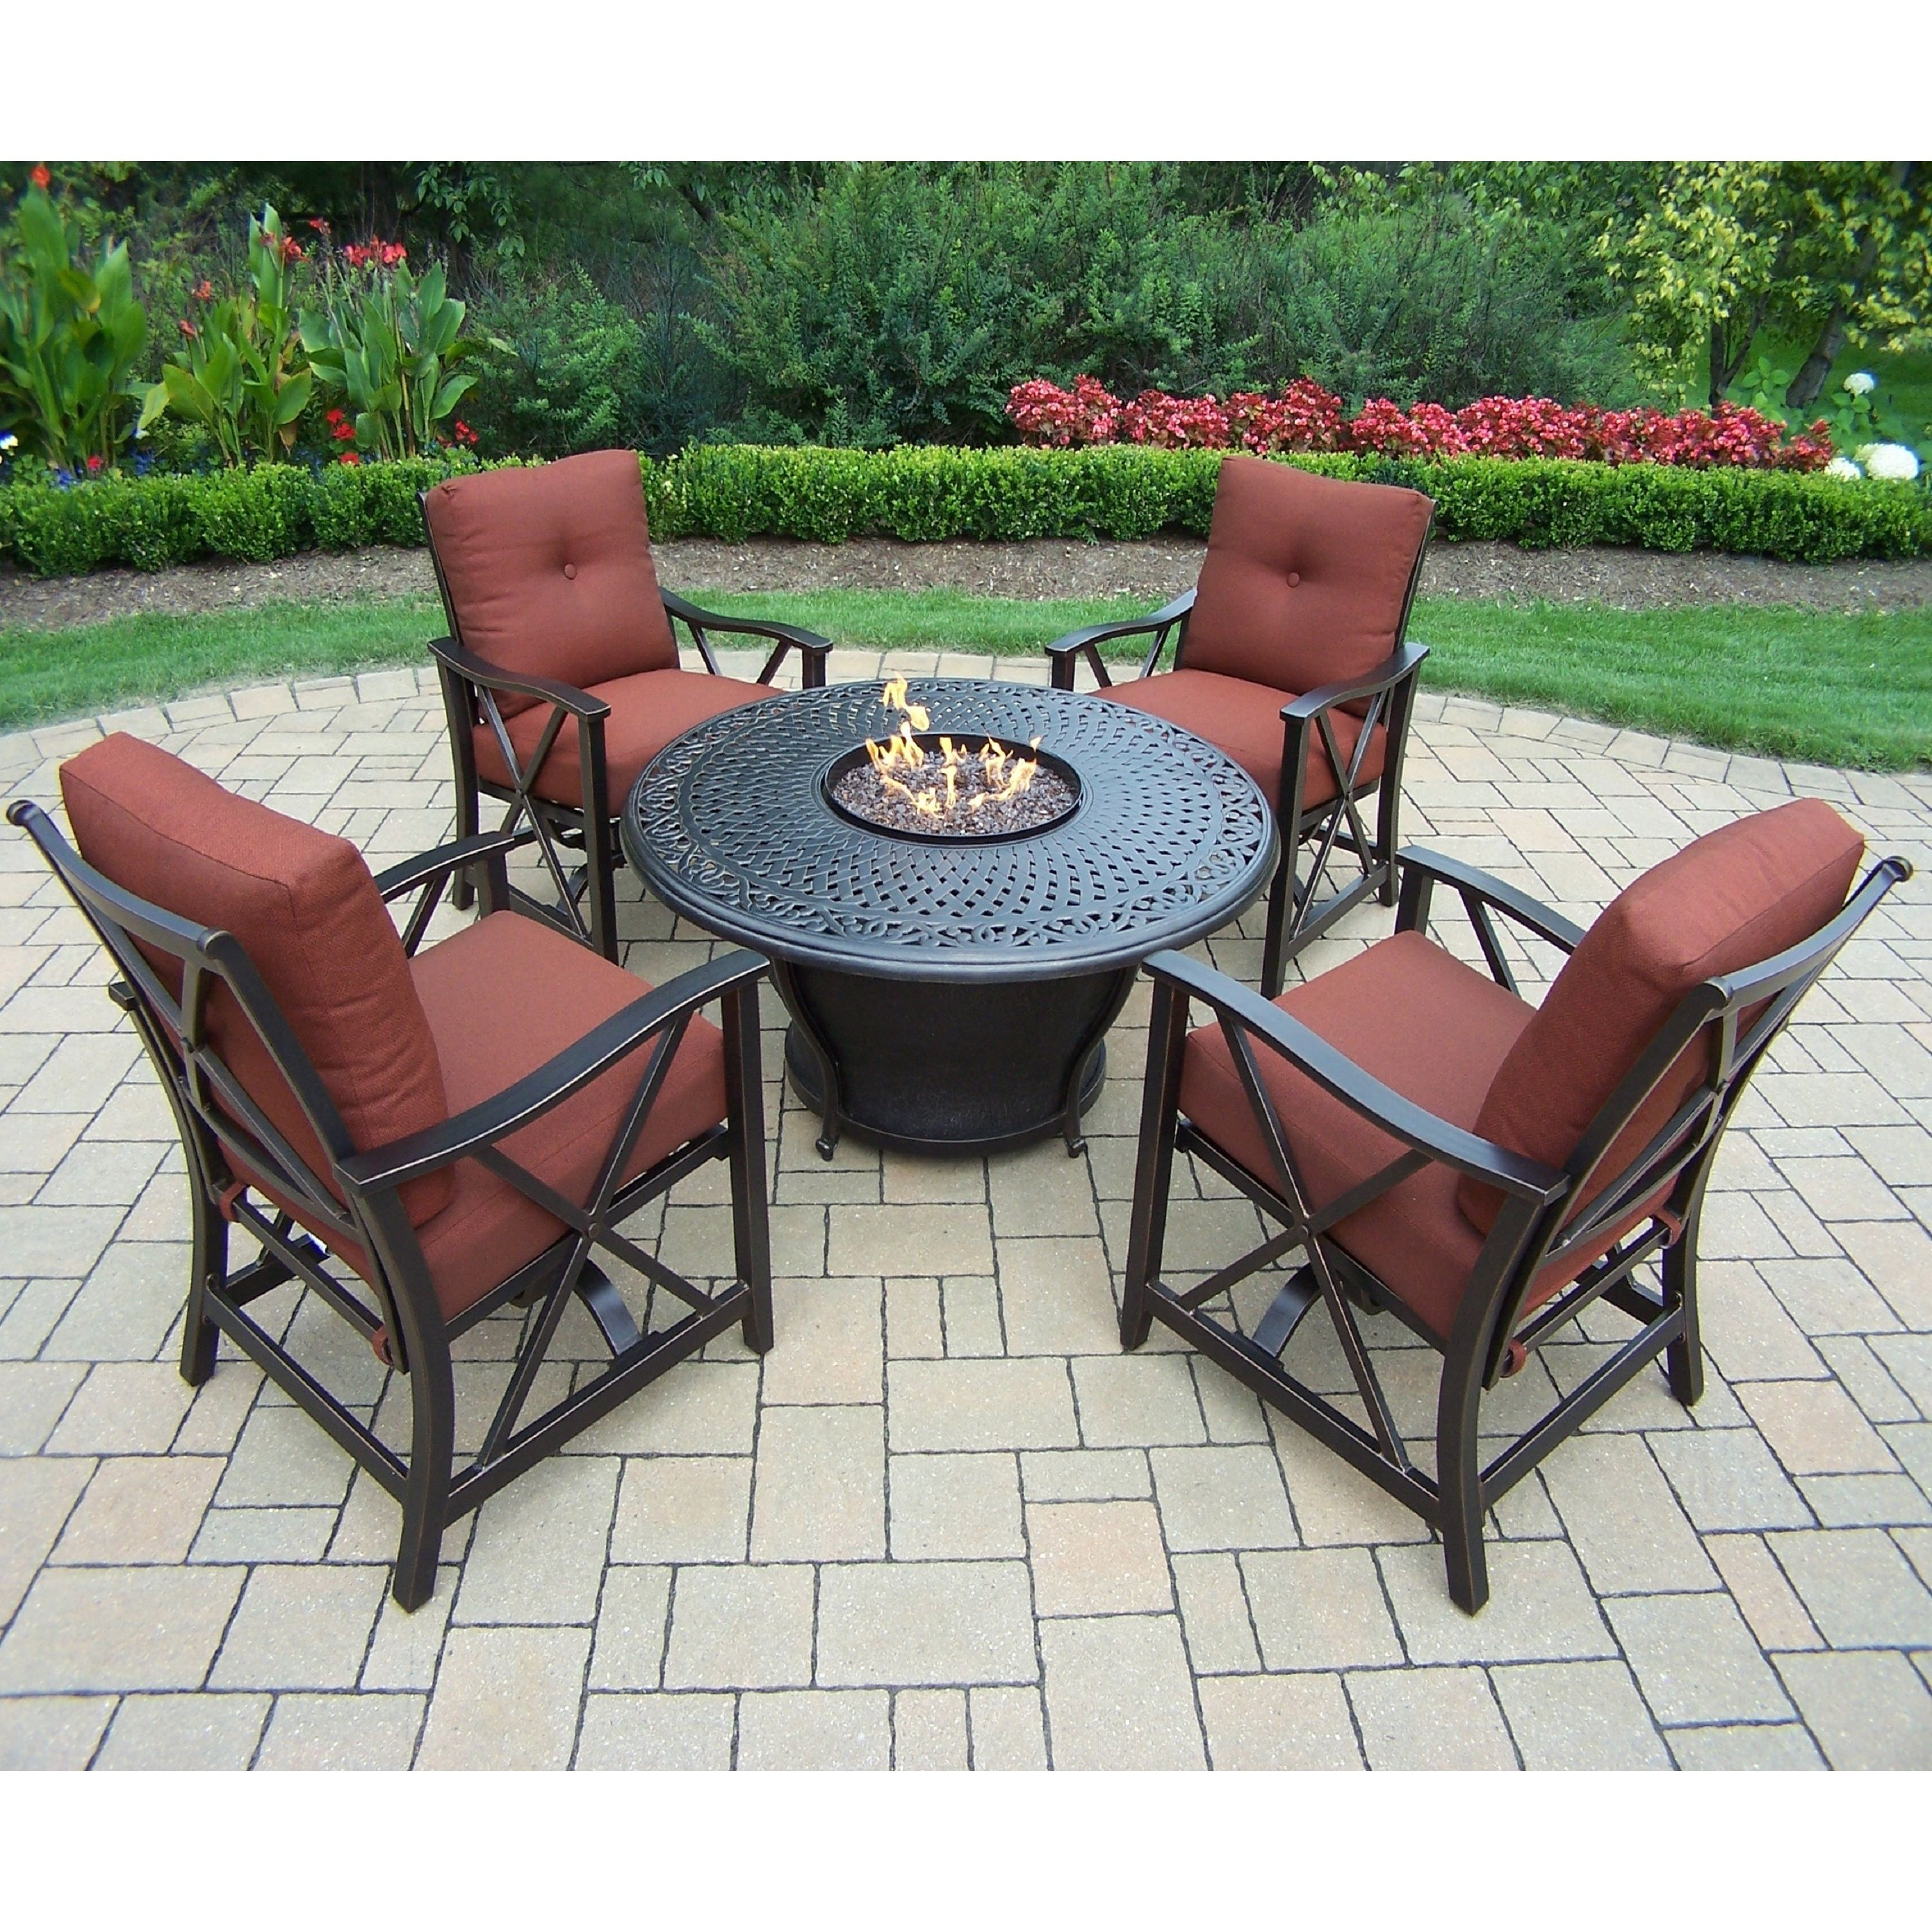 Overstock Com Online Shopping Bedding Furniture Electronics Jewelry Clothing More Fire Pit Chat Set Round Fire Pit Table Fire Pit Seating